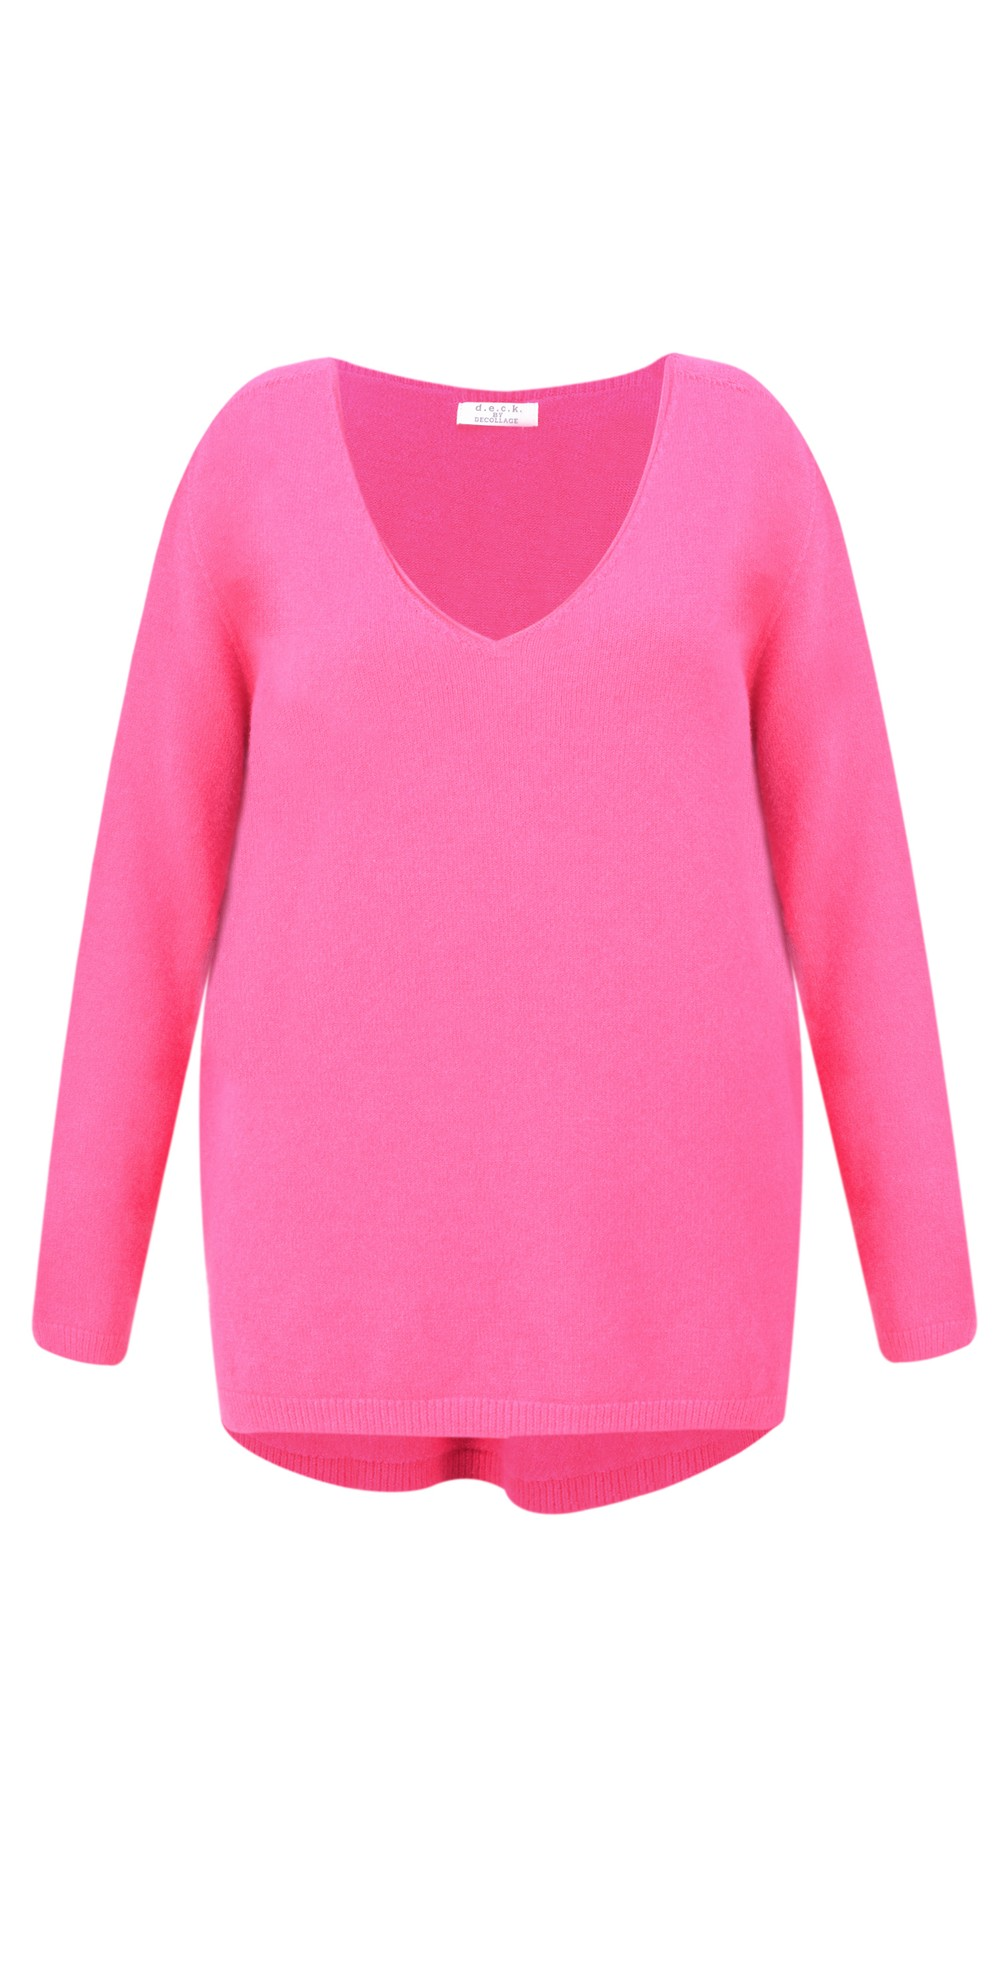 Caitlin Supersoft Knit Jumper main image